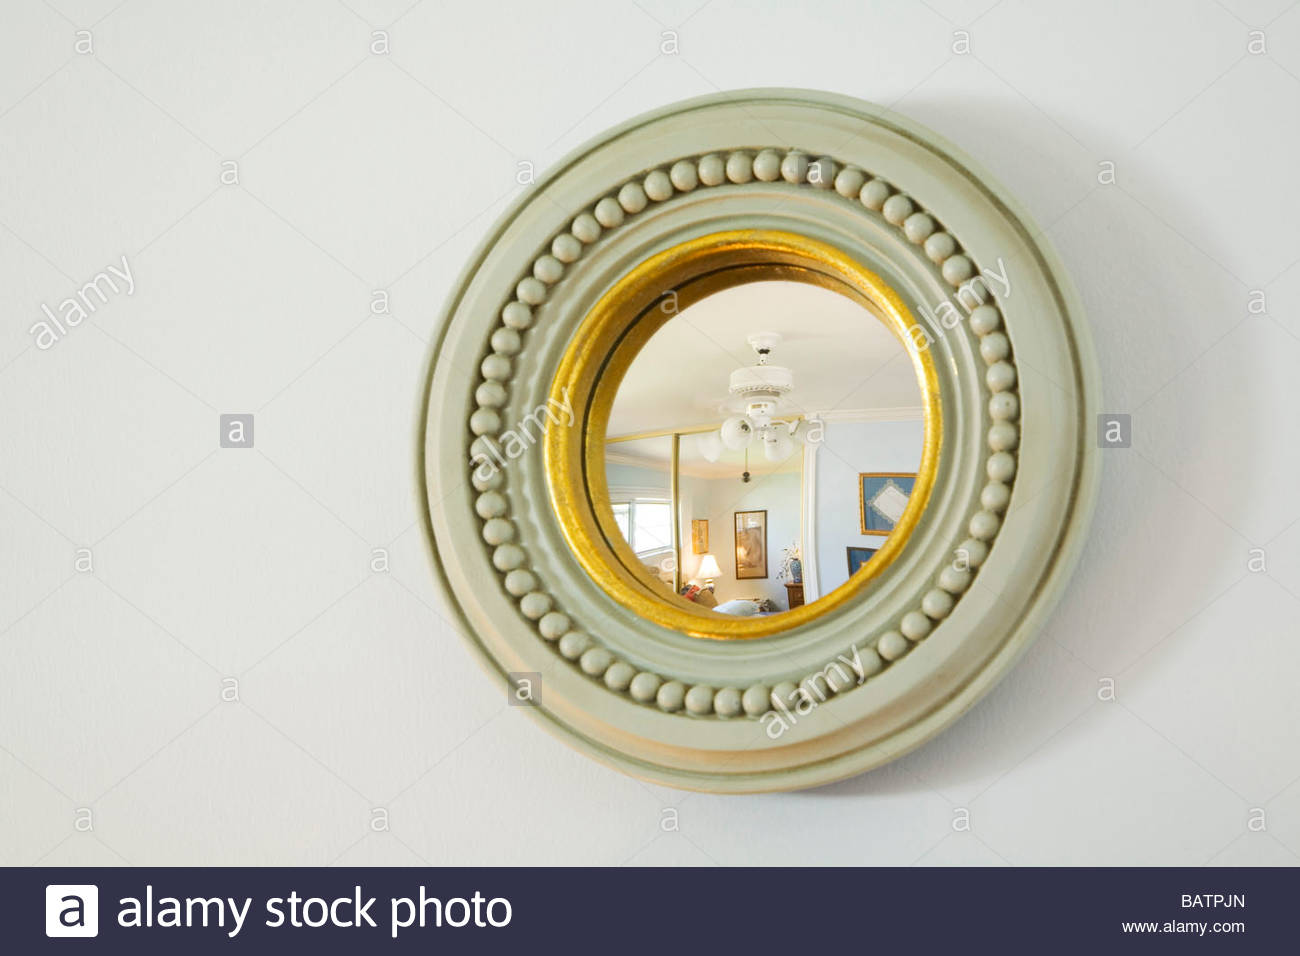 Small Round Decorative Mirror Stock Photo 23901549 Alamy